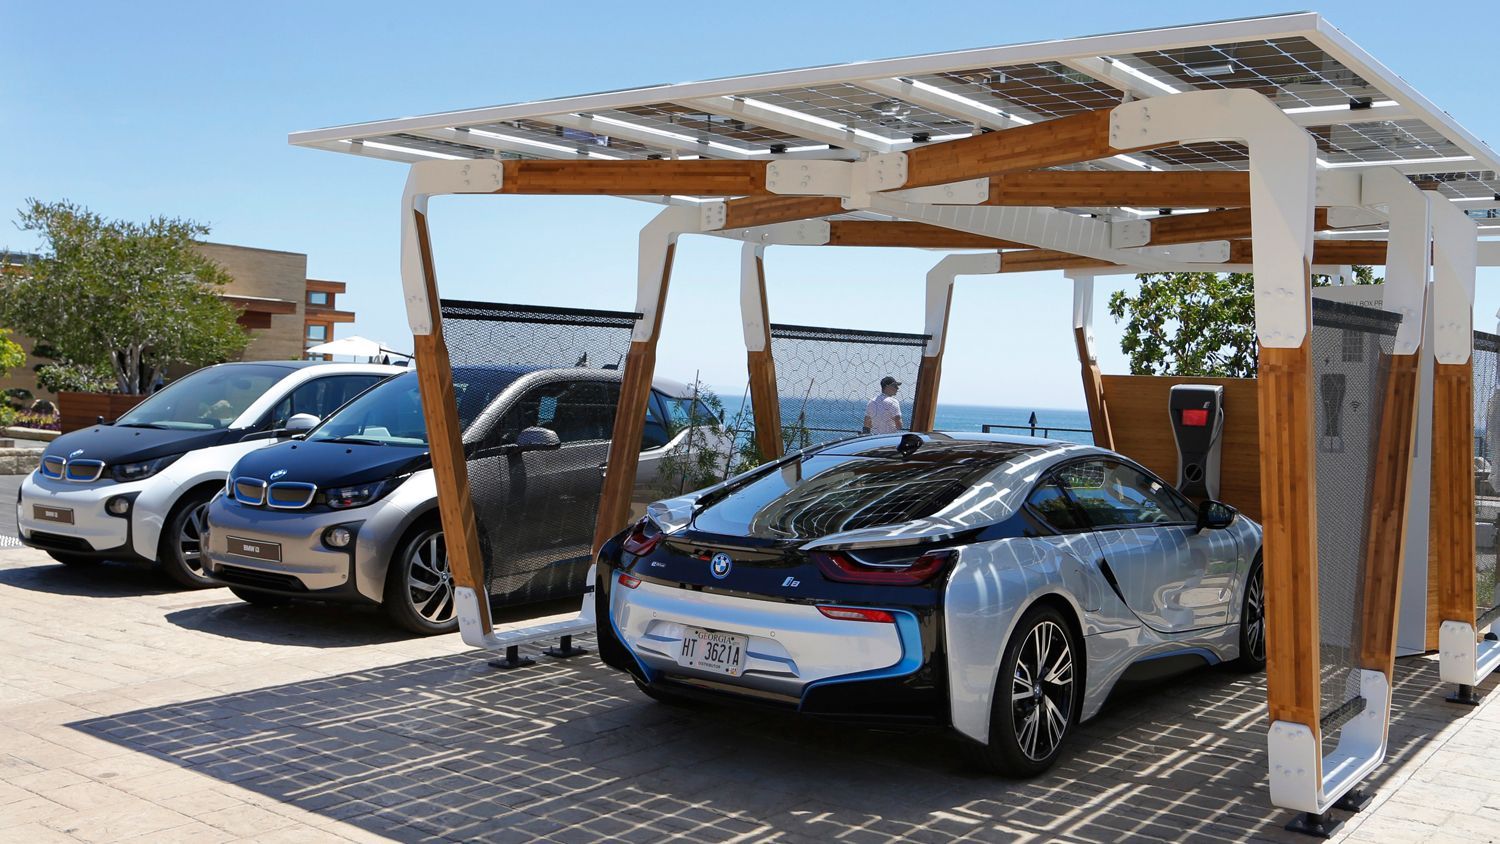 Bmw S Solar Powered Carport Is A Carbon Fiber And Bamboo Ecosculpture Solar Pergola Carport Designs Solar Car